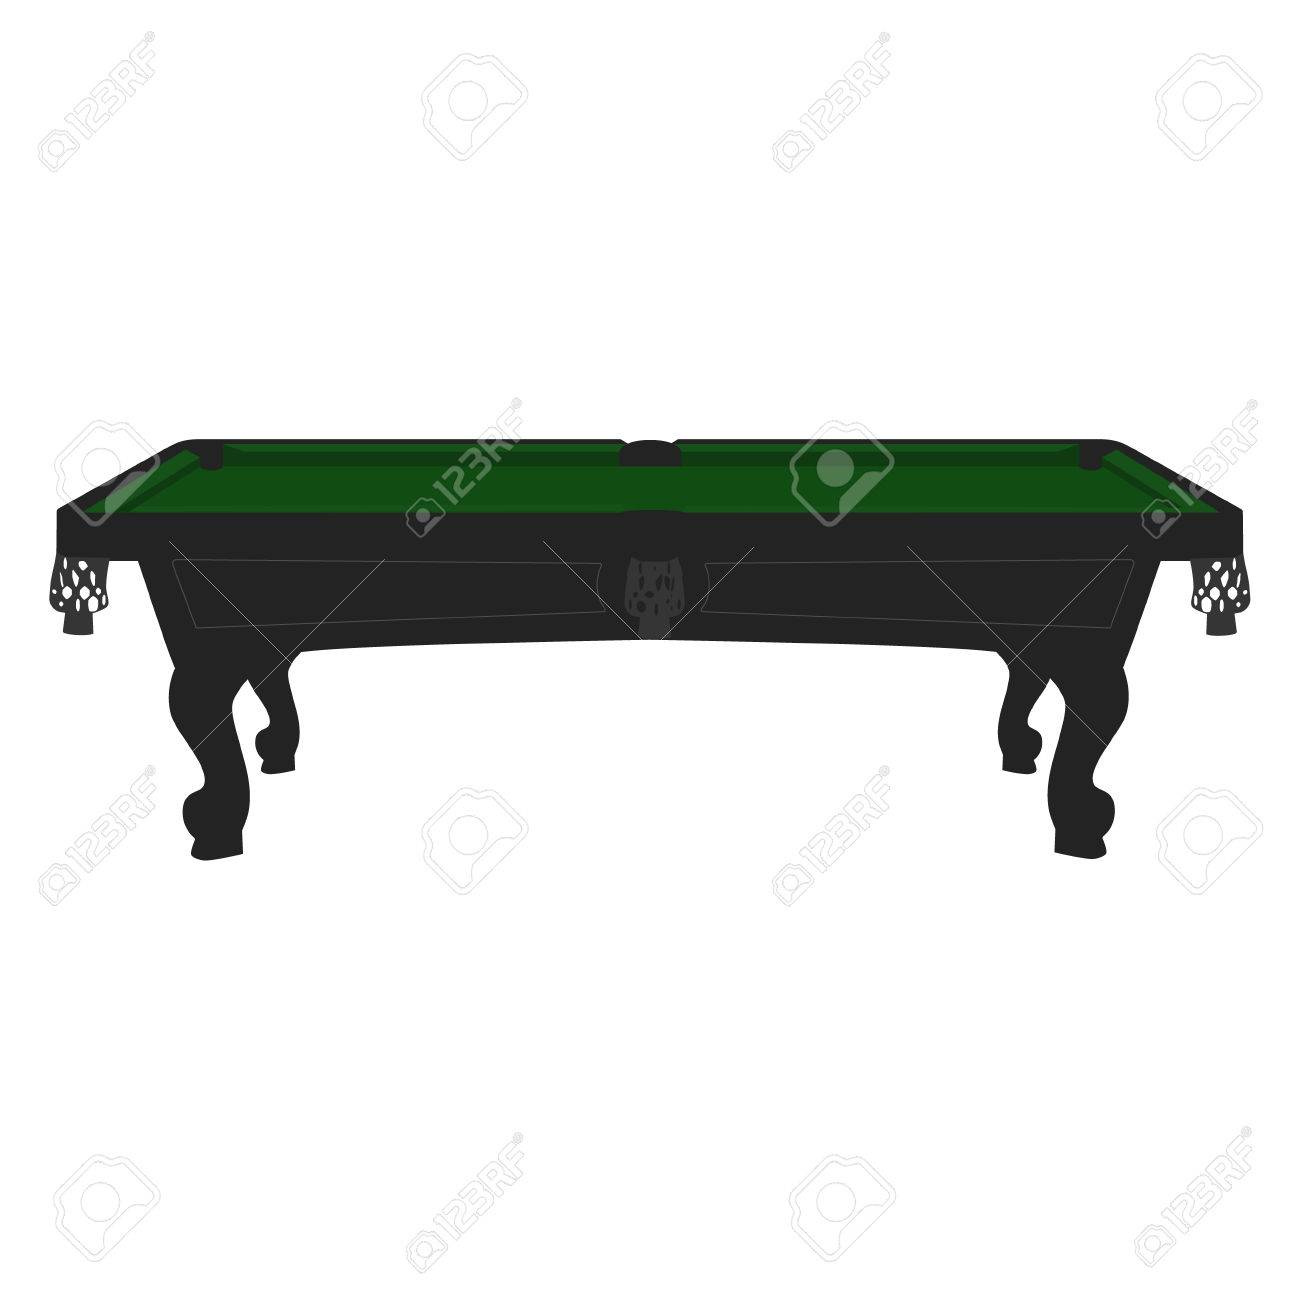 Vector Illustration Retro Vintage Pool Table With Green Cloth - Retro pool table